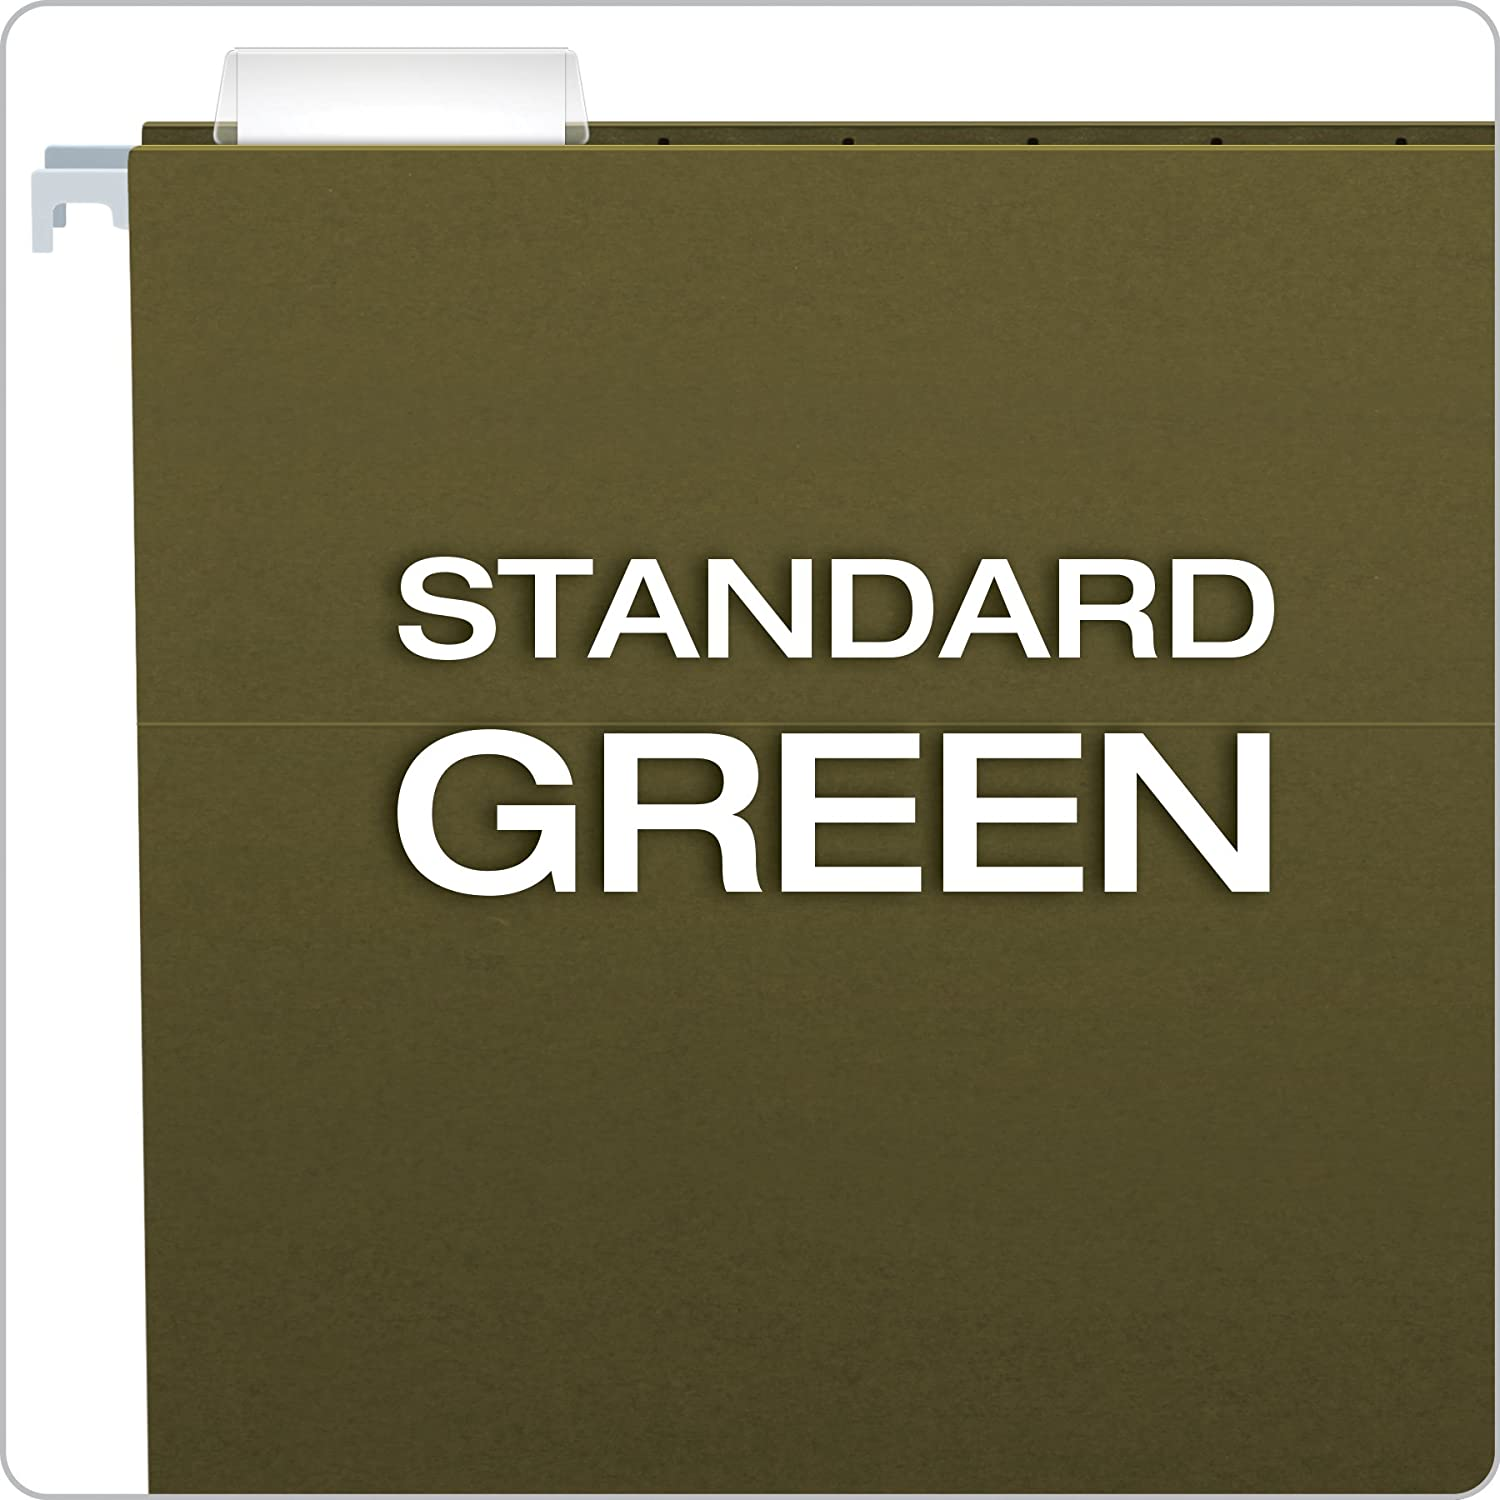 china stationery Standard Green 25pcs/Box Home and Office Color Coded File Reinforced Hanging File Folders